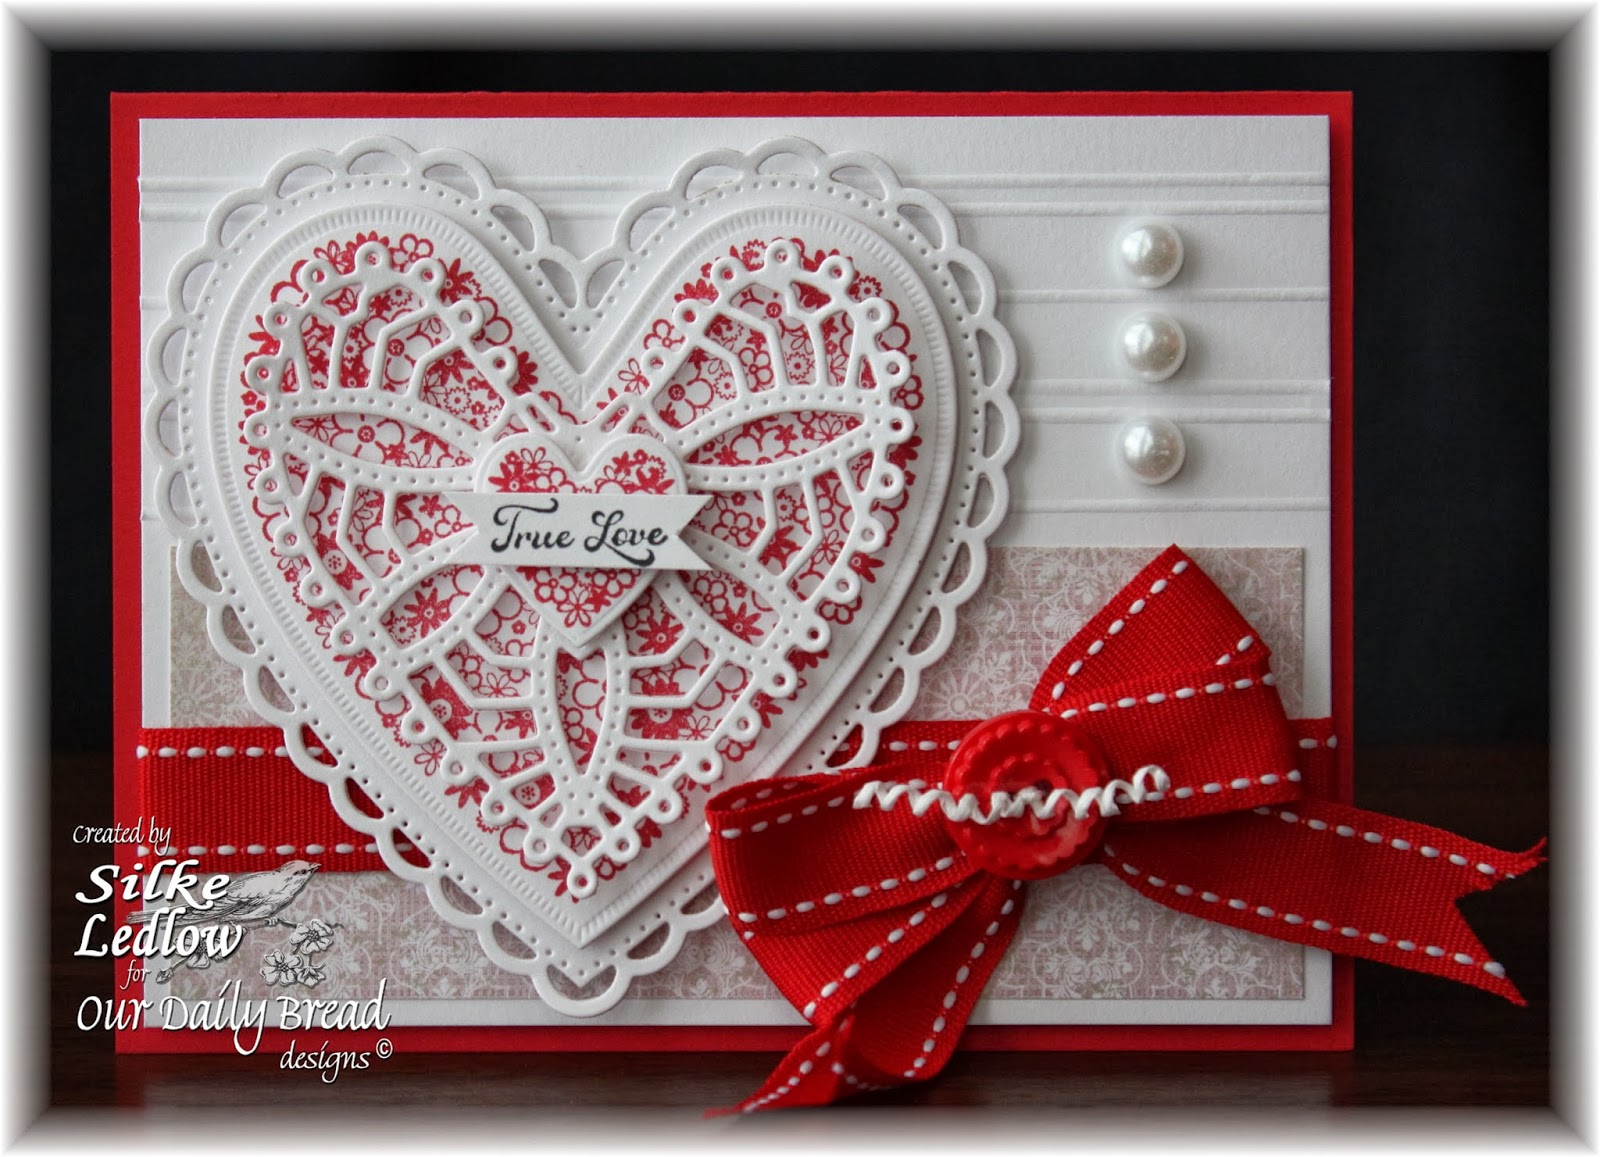 Stamps - Our Daily Bread Designs Clean Heart, ODBD Heart and Soul Paper Collection, ODBD Custom Ornate Hearts Die